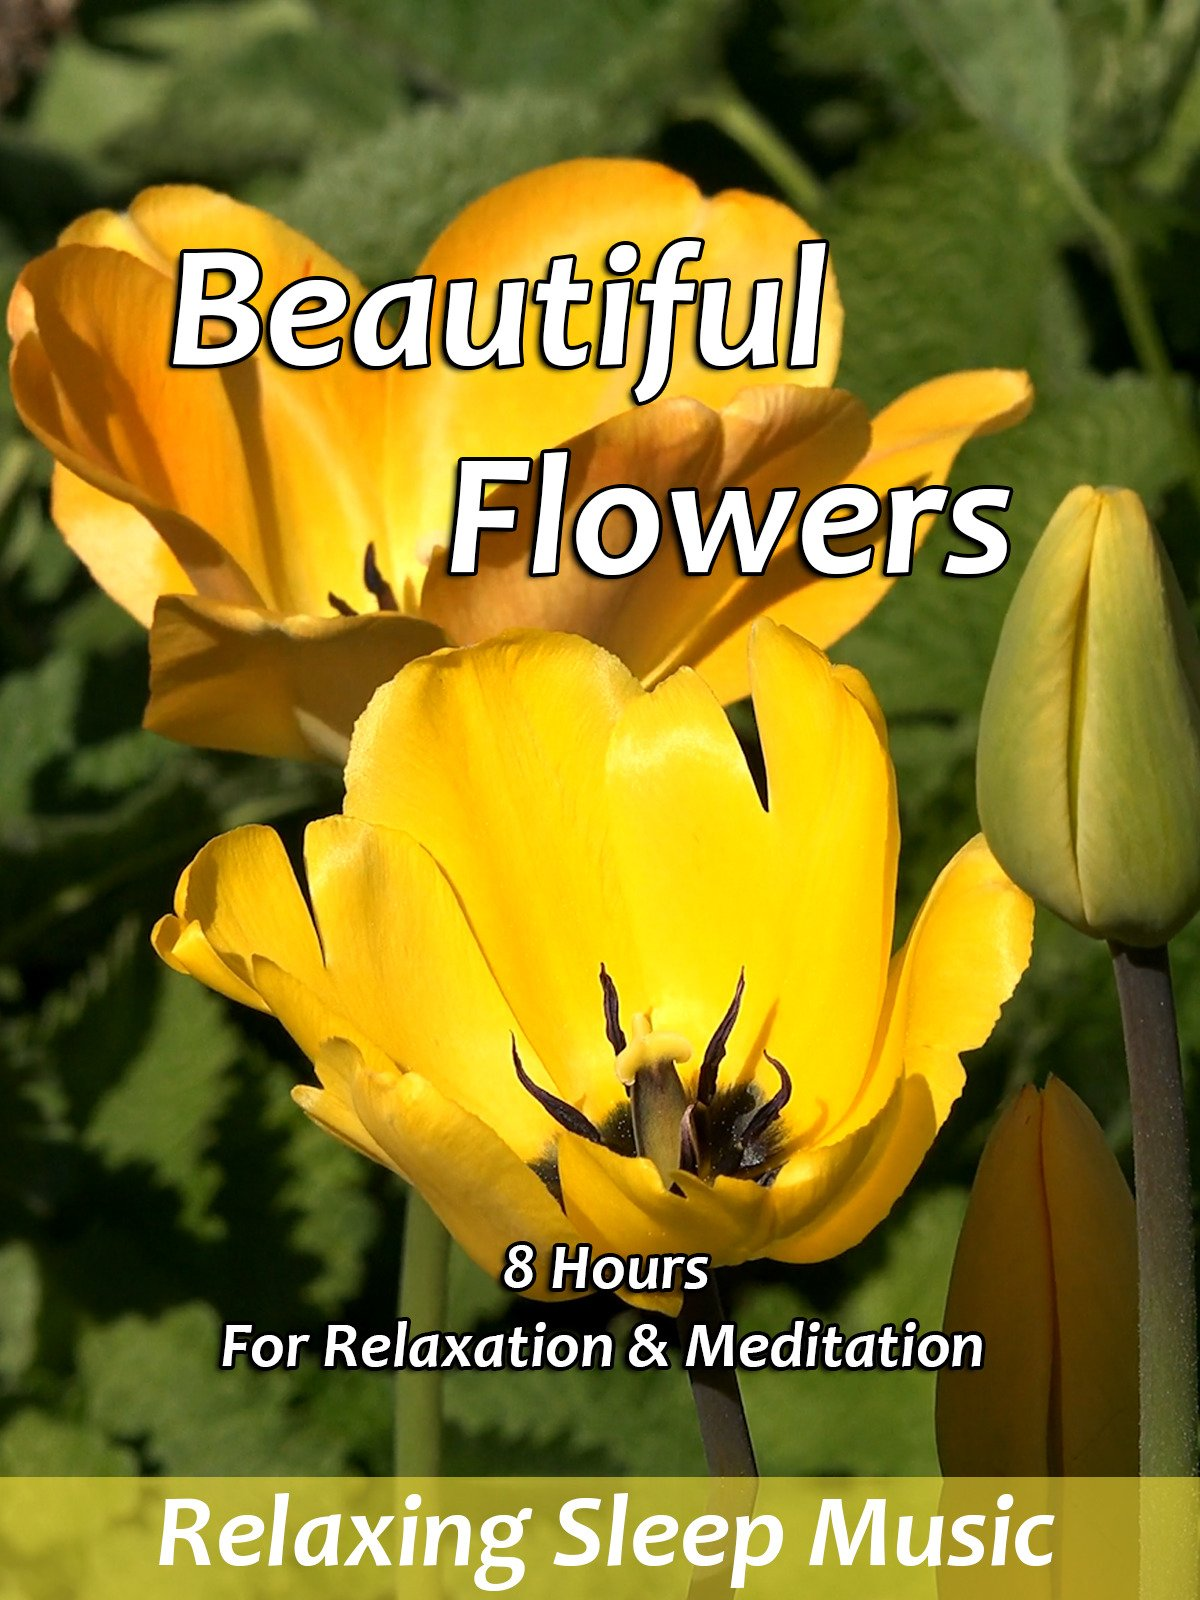 Beautiful Flowers for Relaxation & Meditation